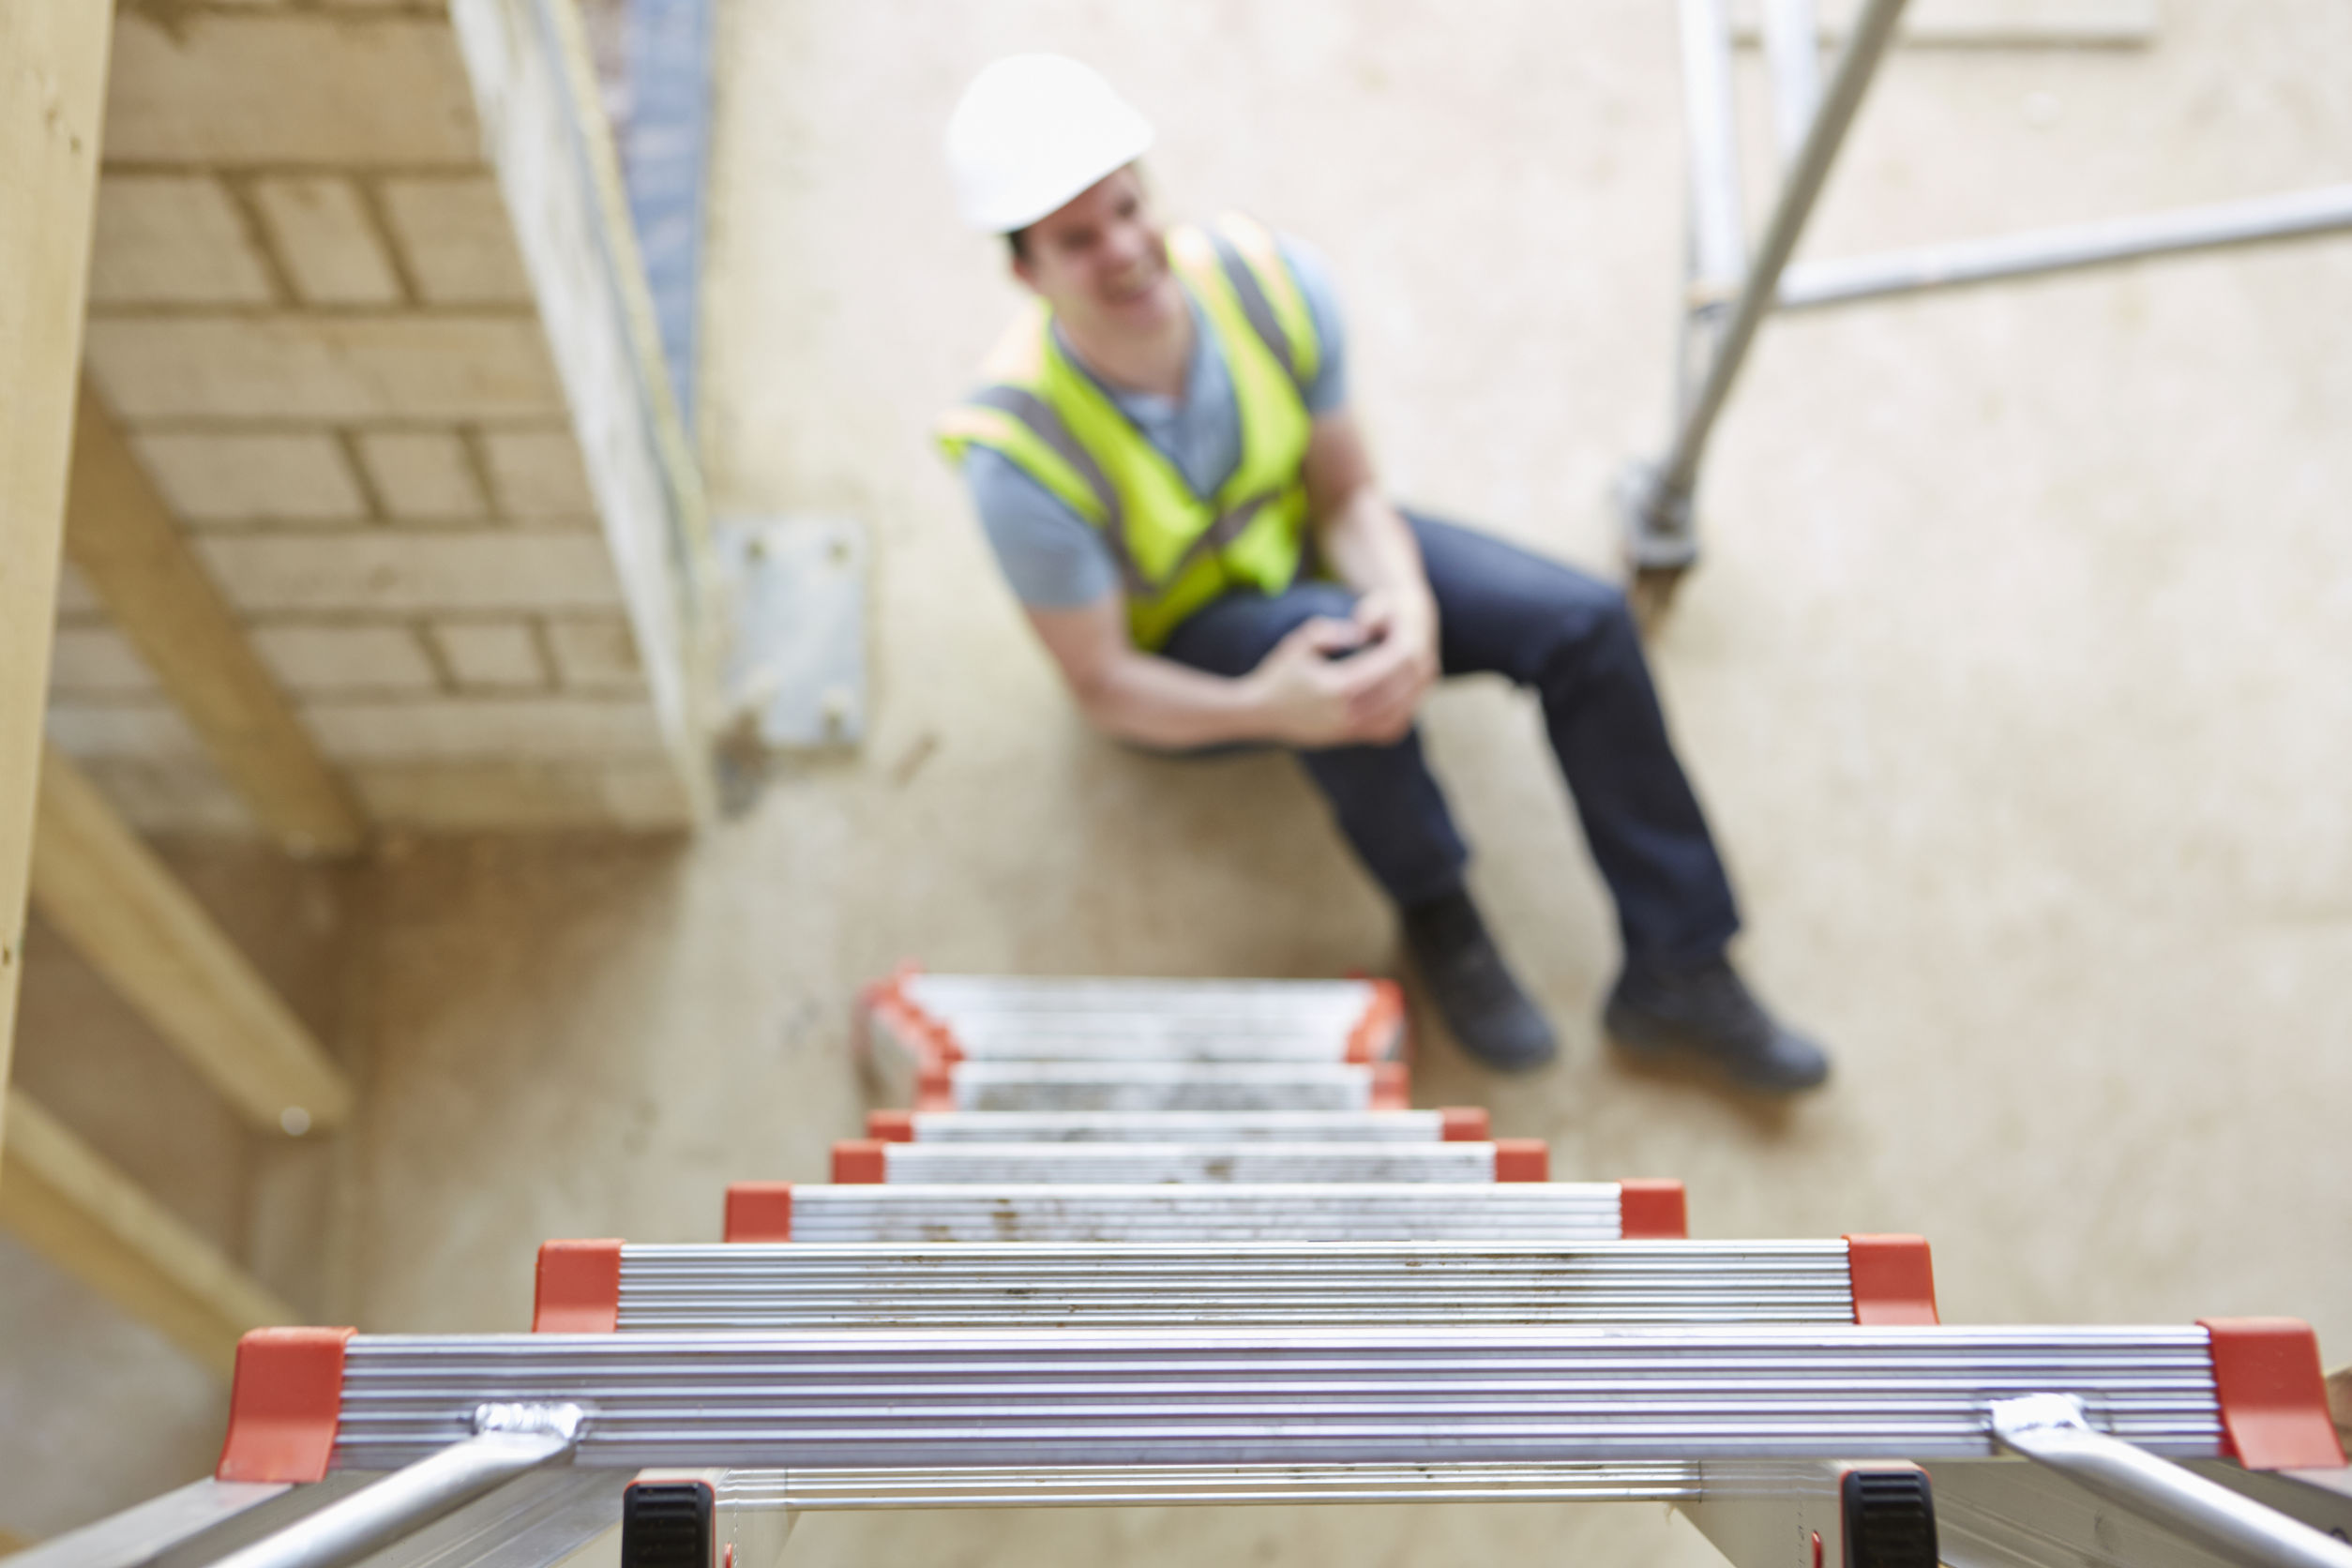 workers comp in south carolina